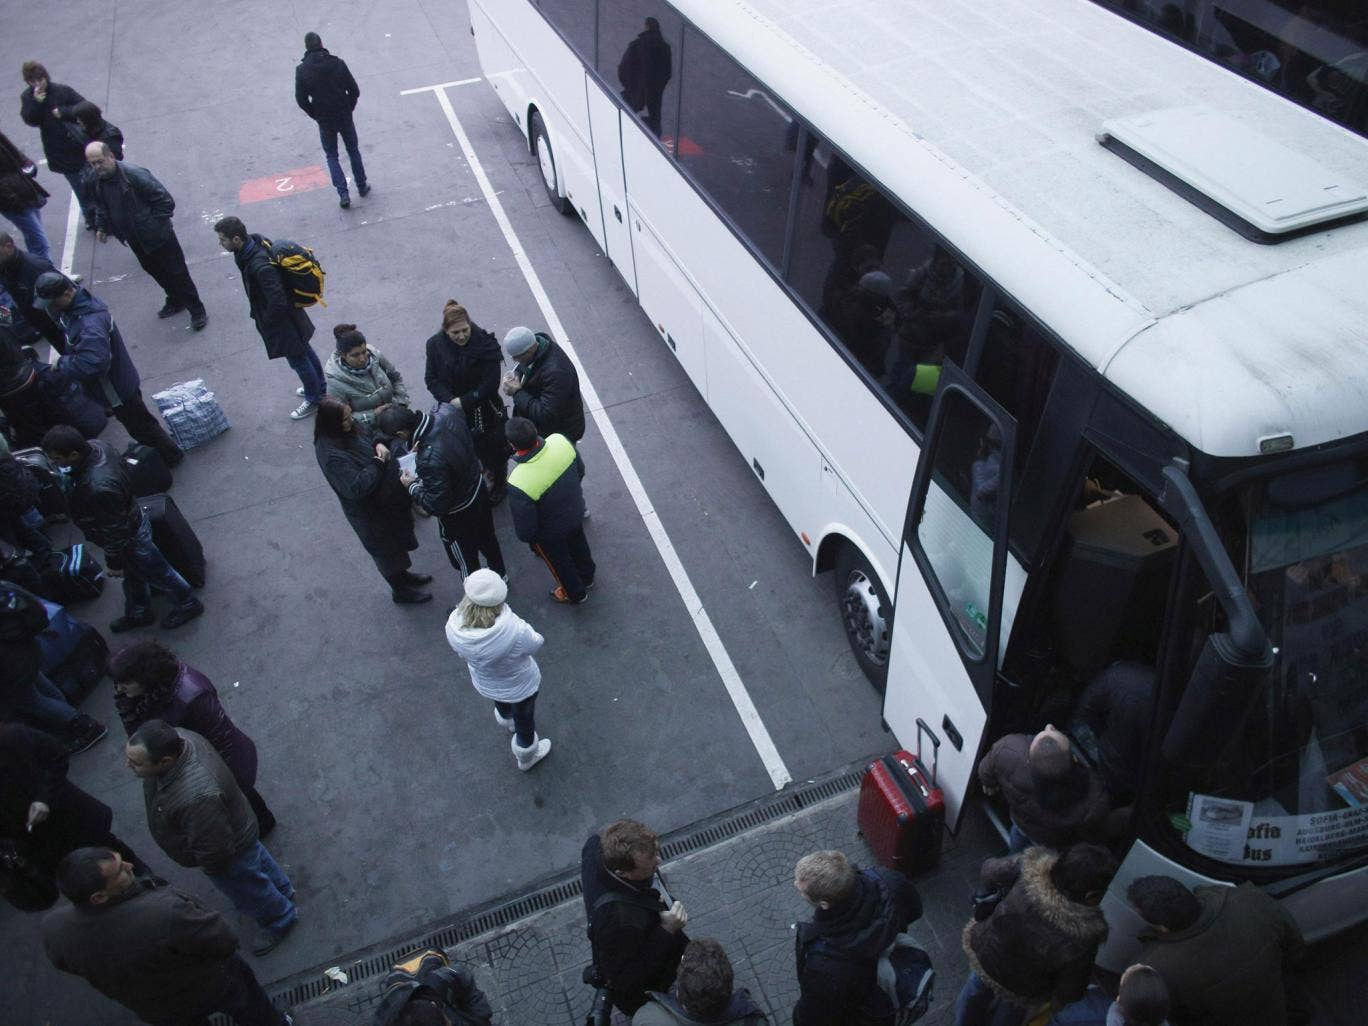 People stand next to a bus departing from Sofia's central bus station headed to London. Hostility to the current scale of immigration is increasing among the British public